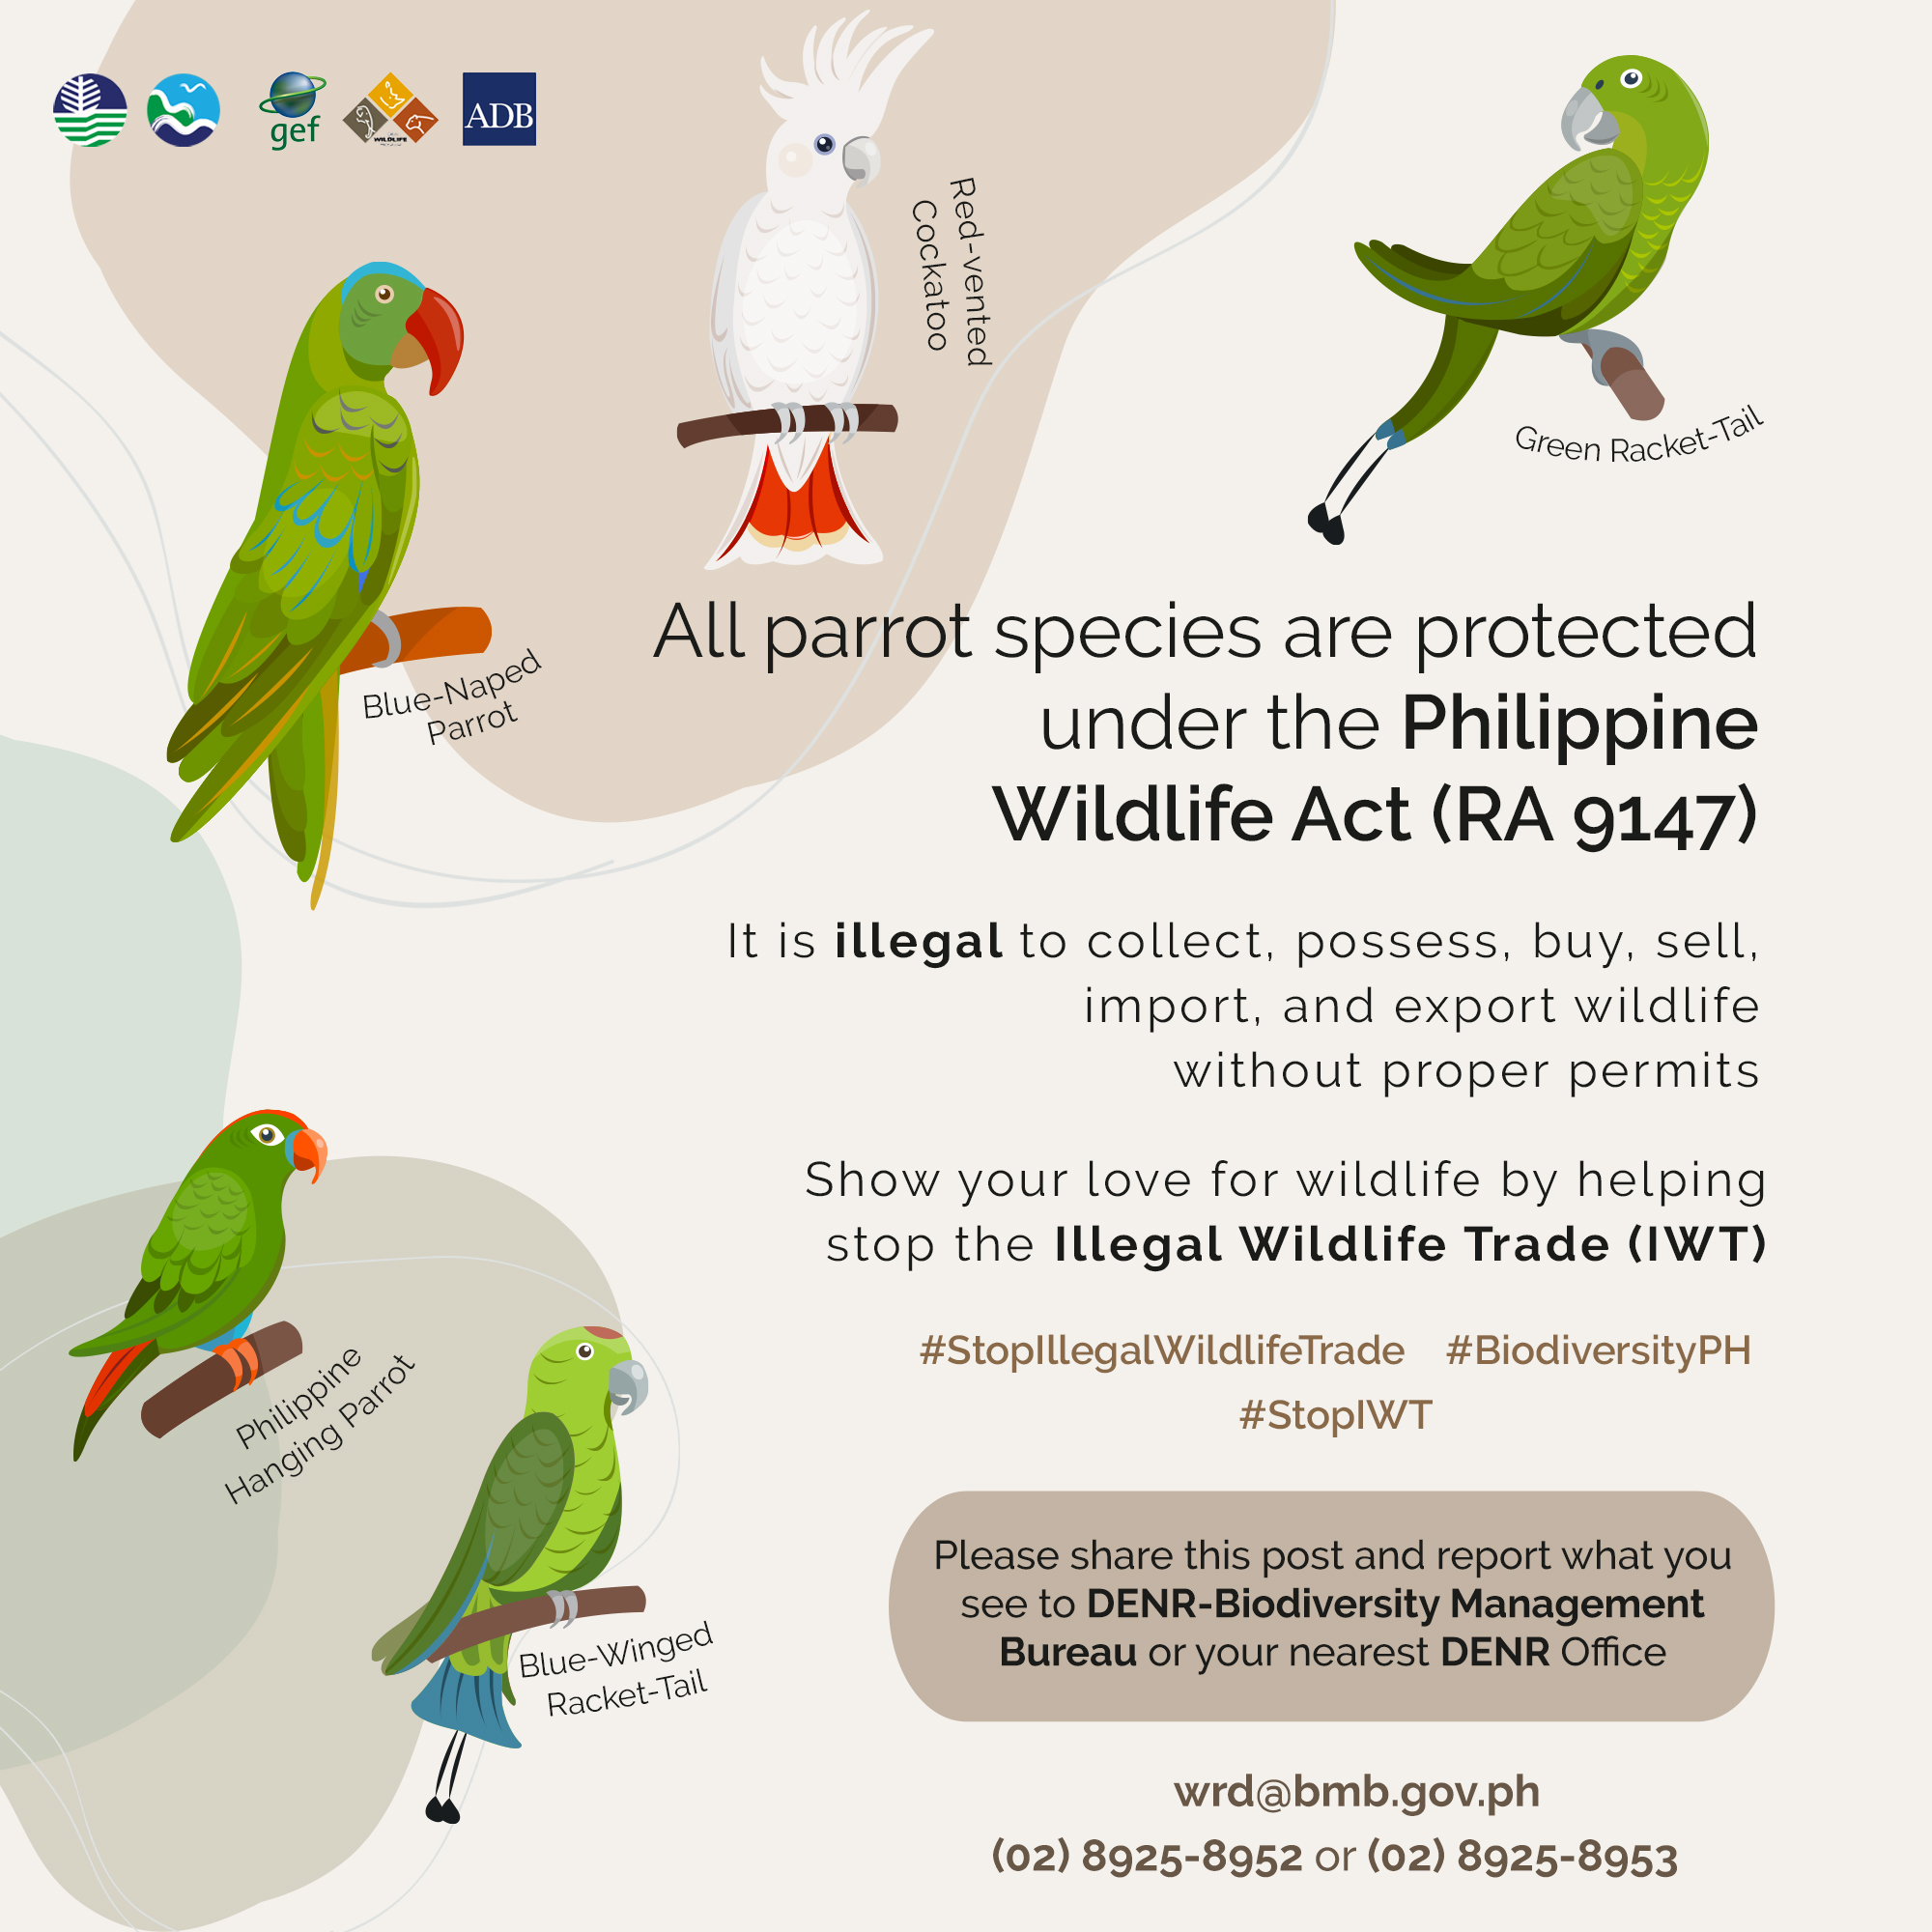 DENR IWT Species Spotlights (Native Parrots)